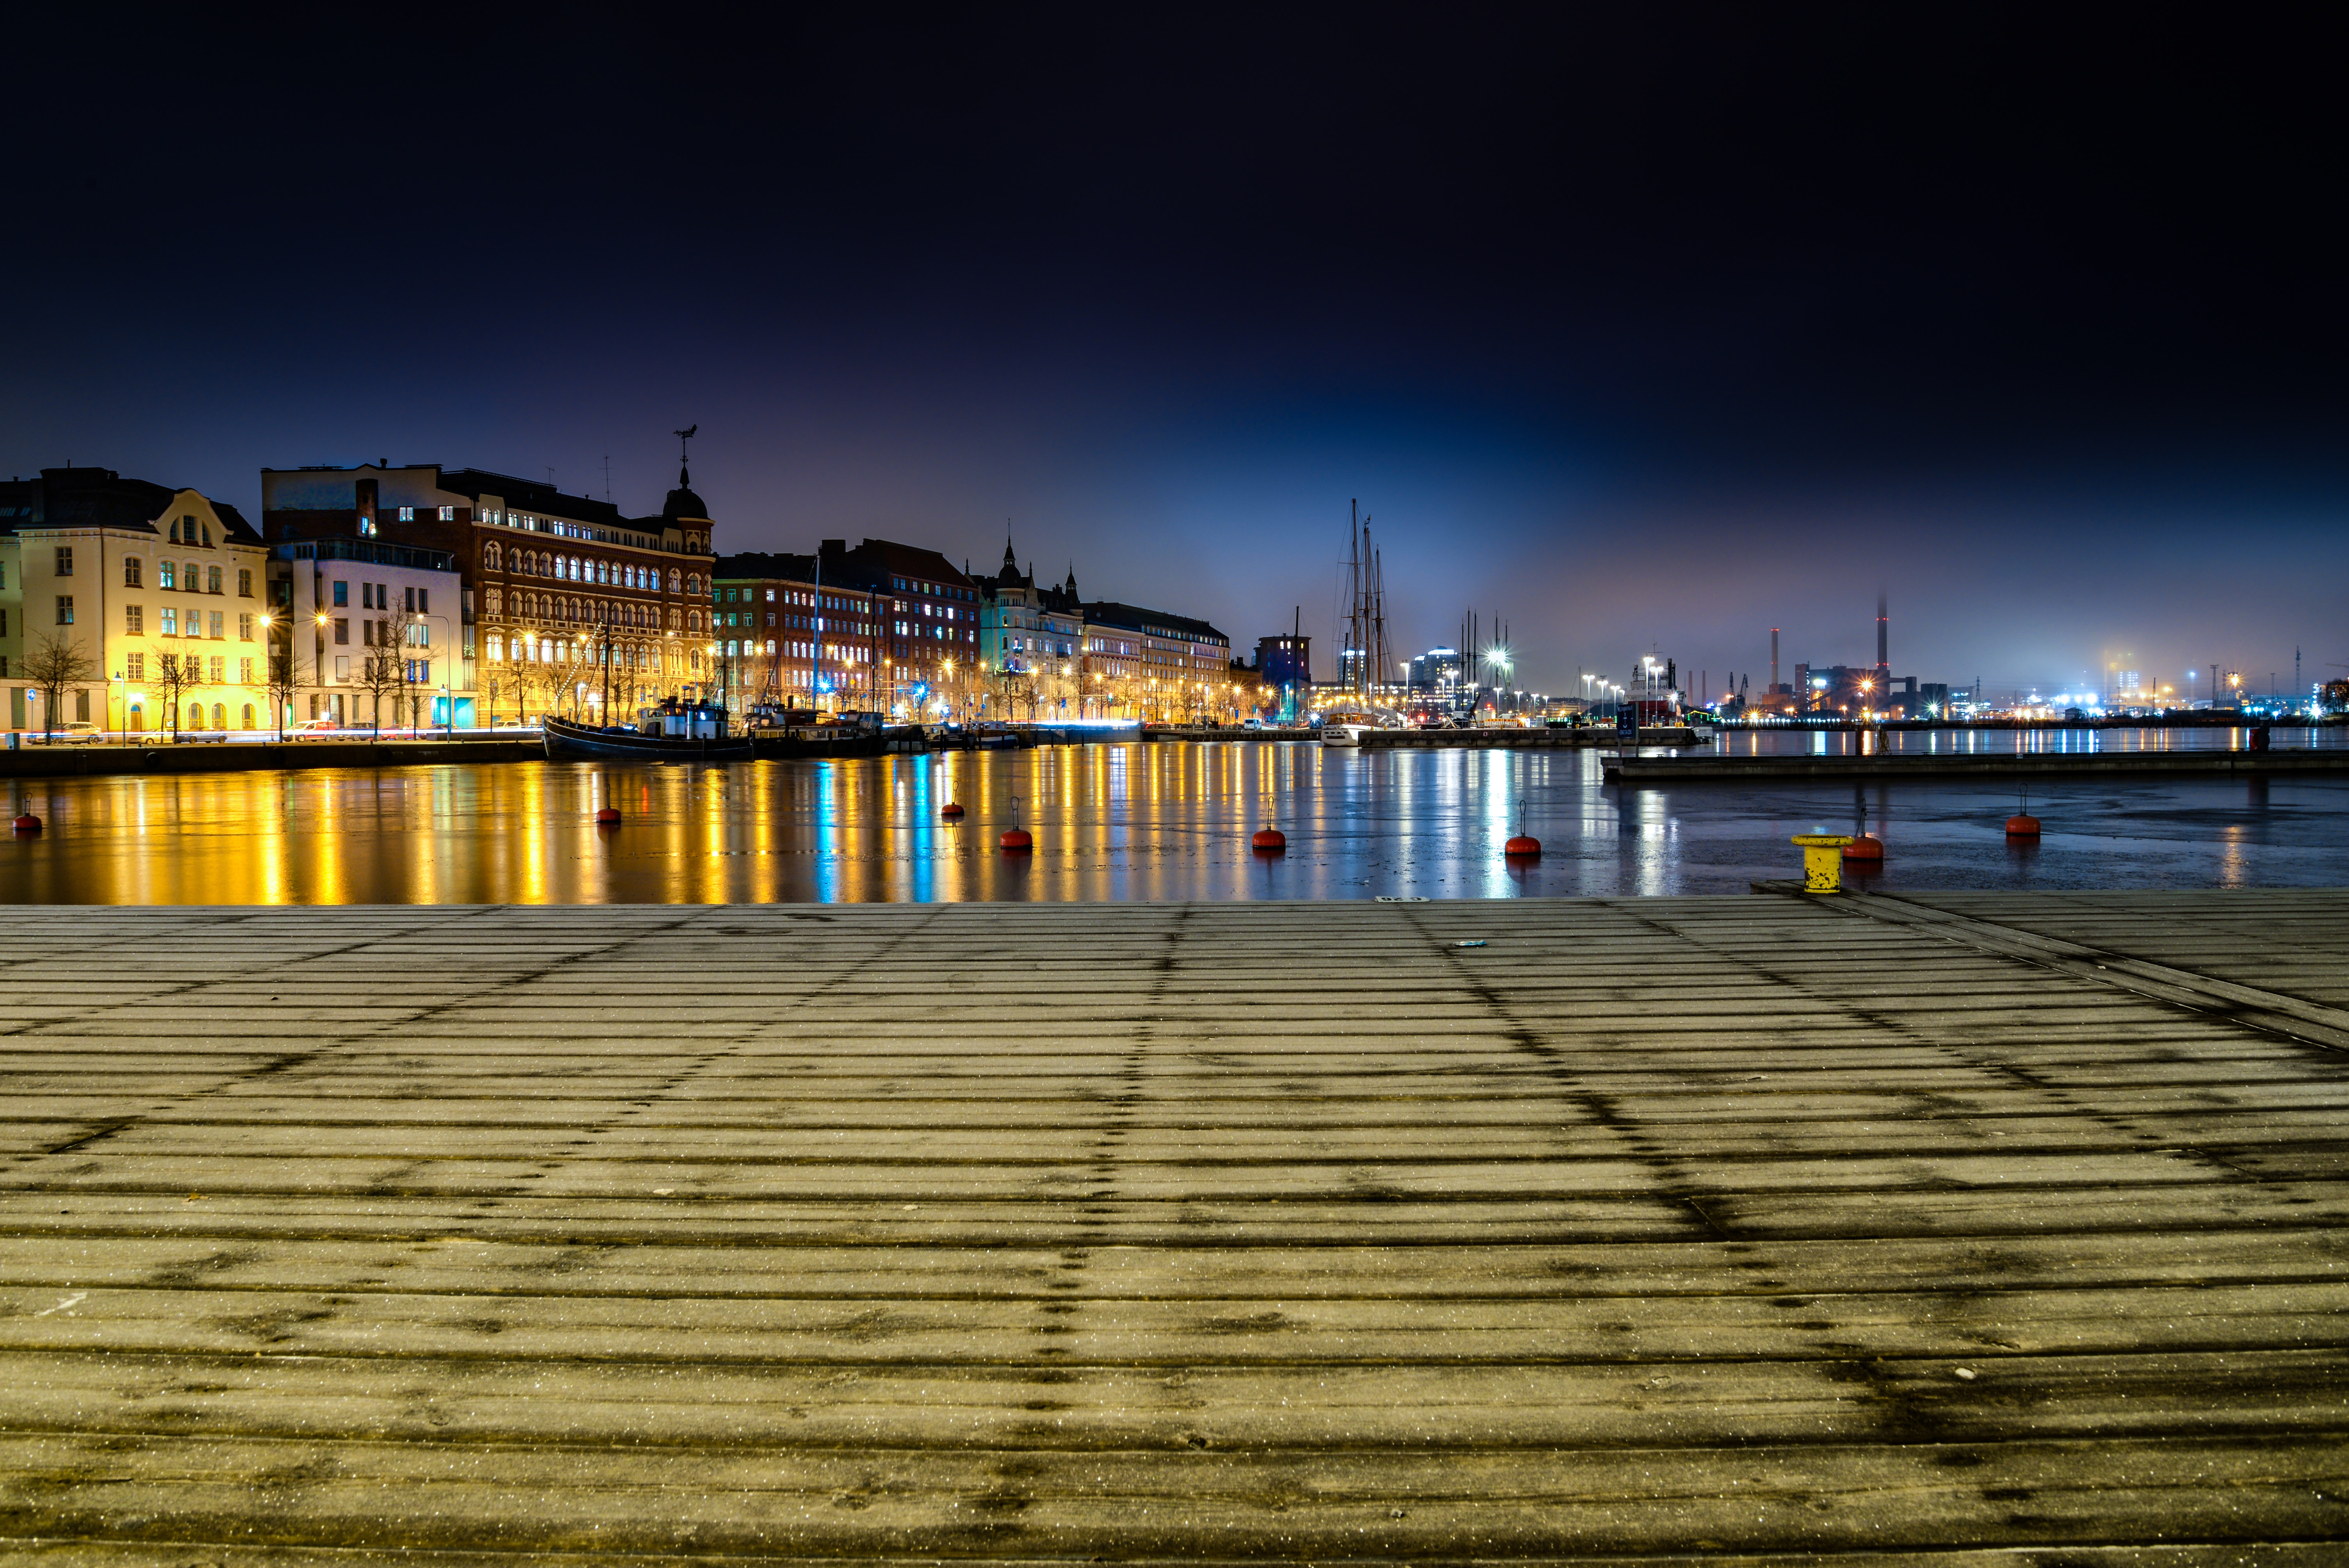 Panoramic Photo of City Buildings during Night Time, Architecture, Night, Water, Urban, HQ Photo